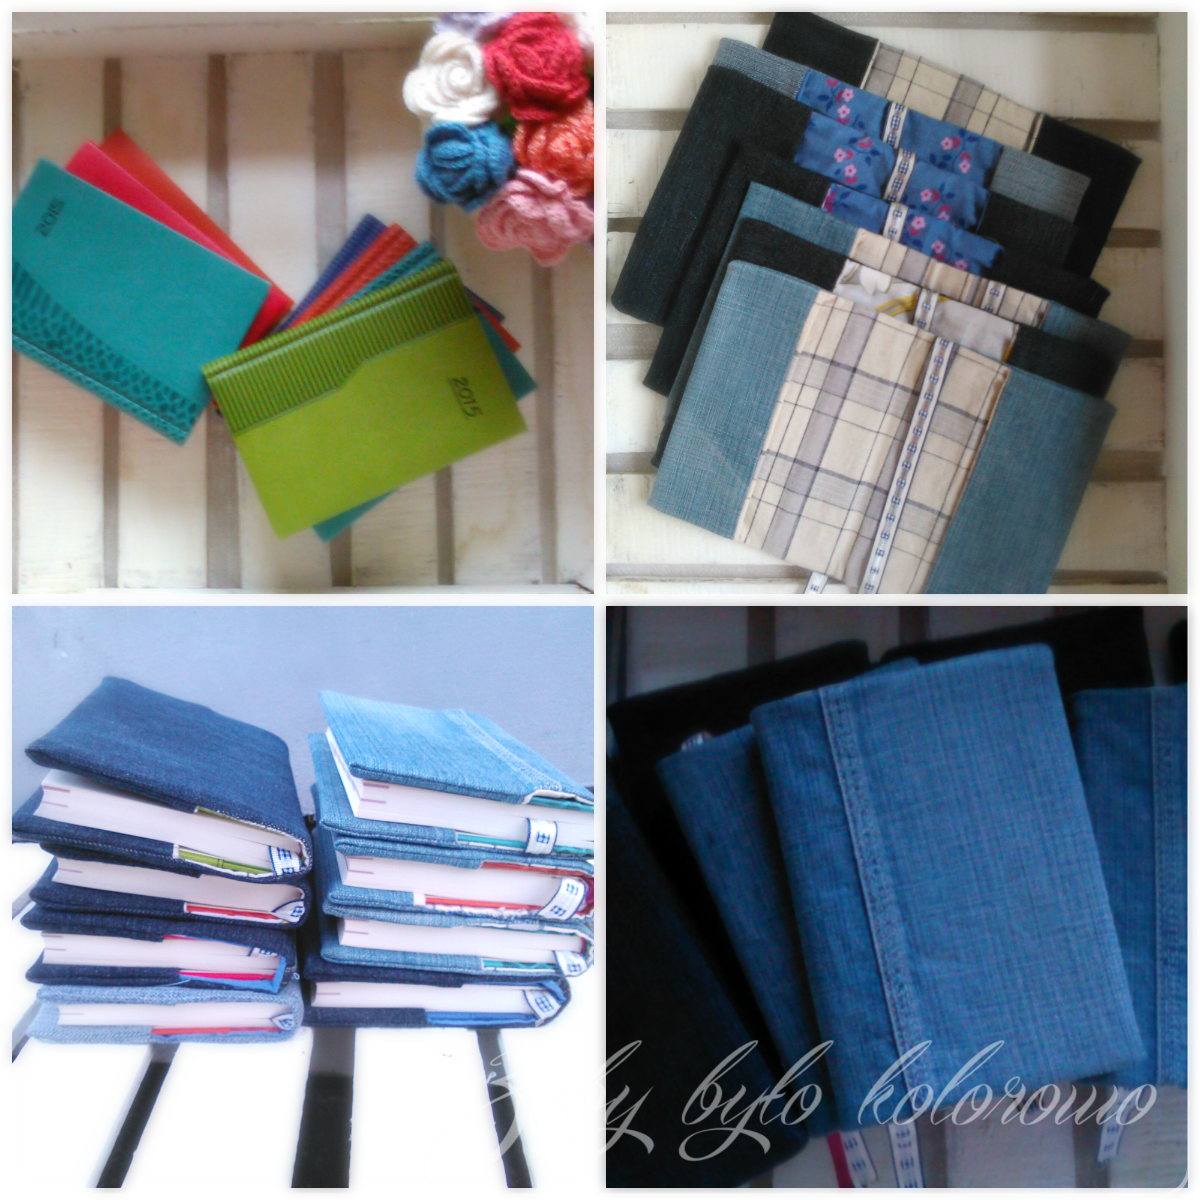 denim cover book